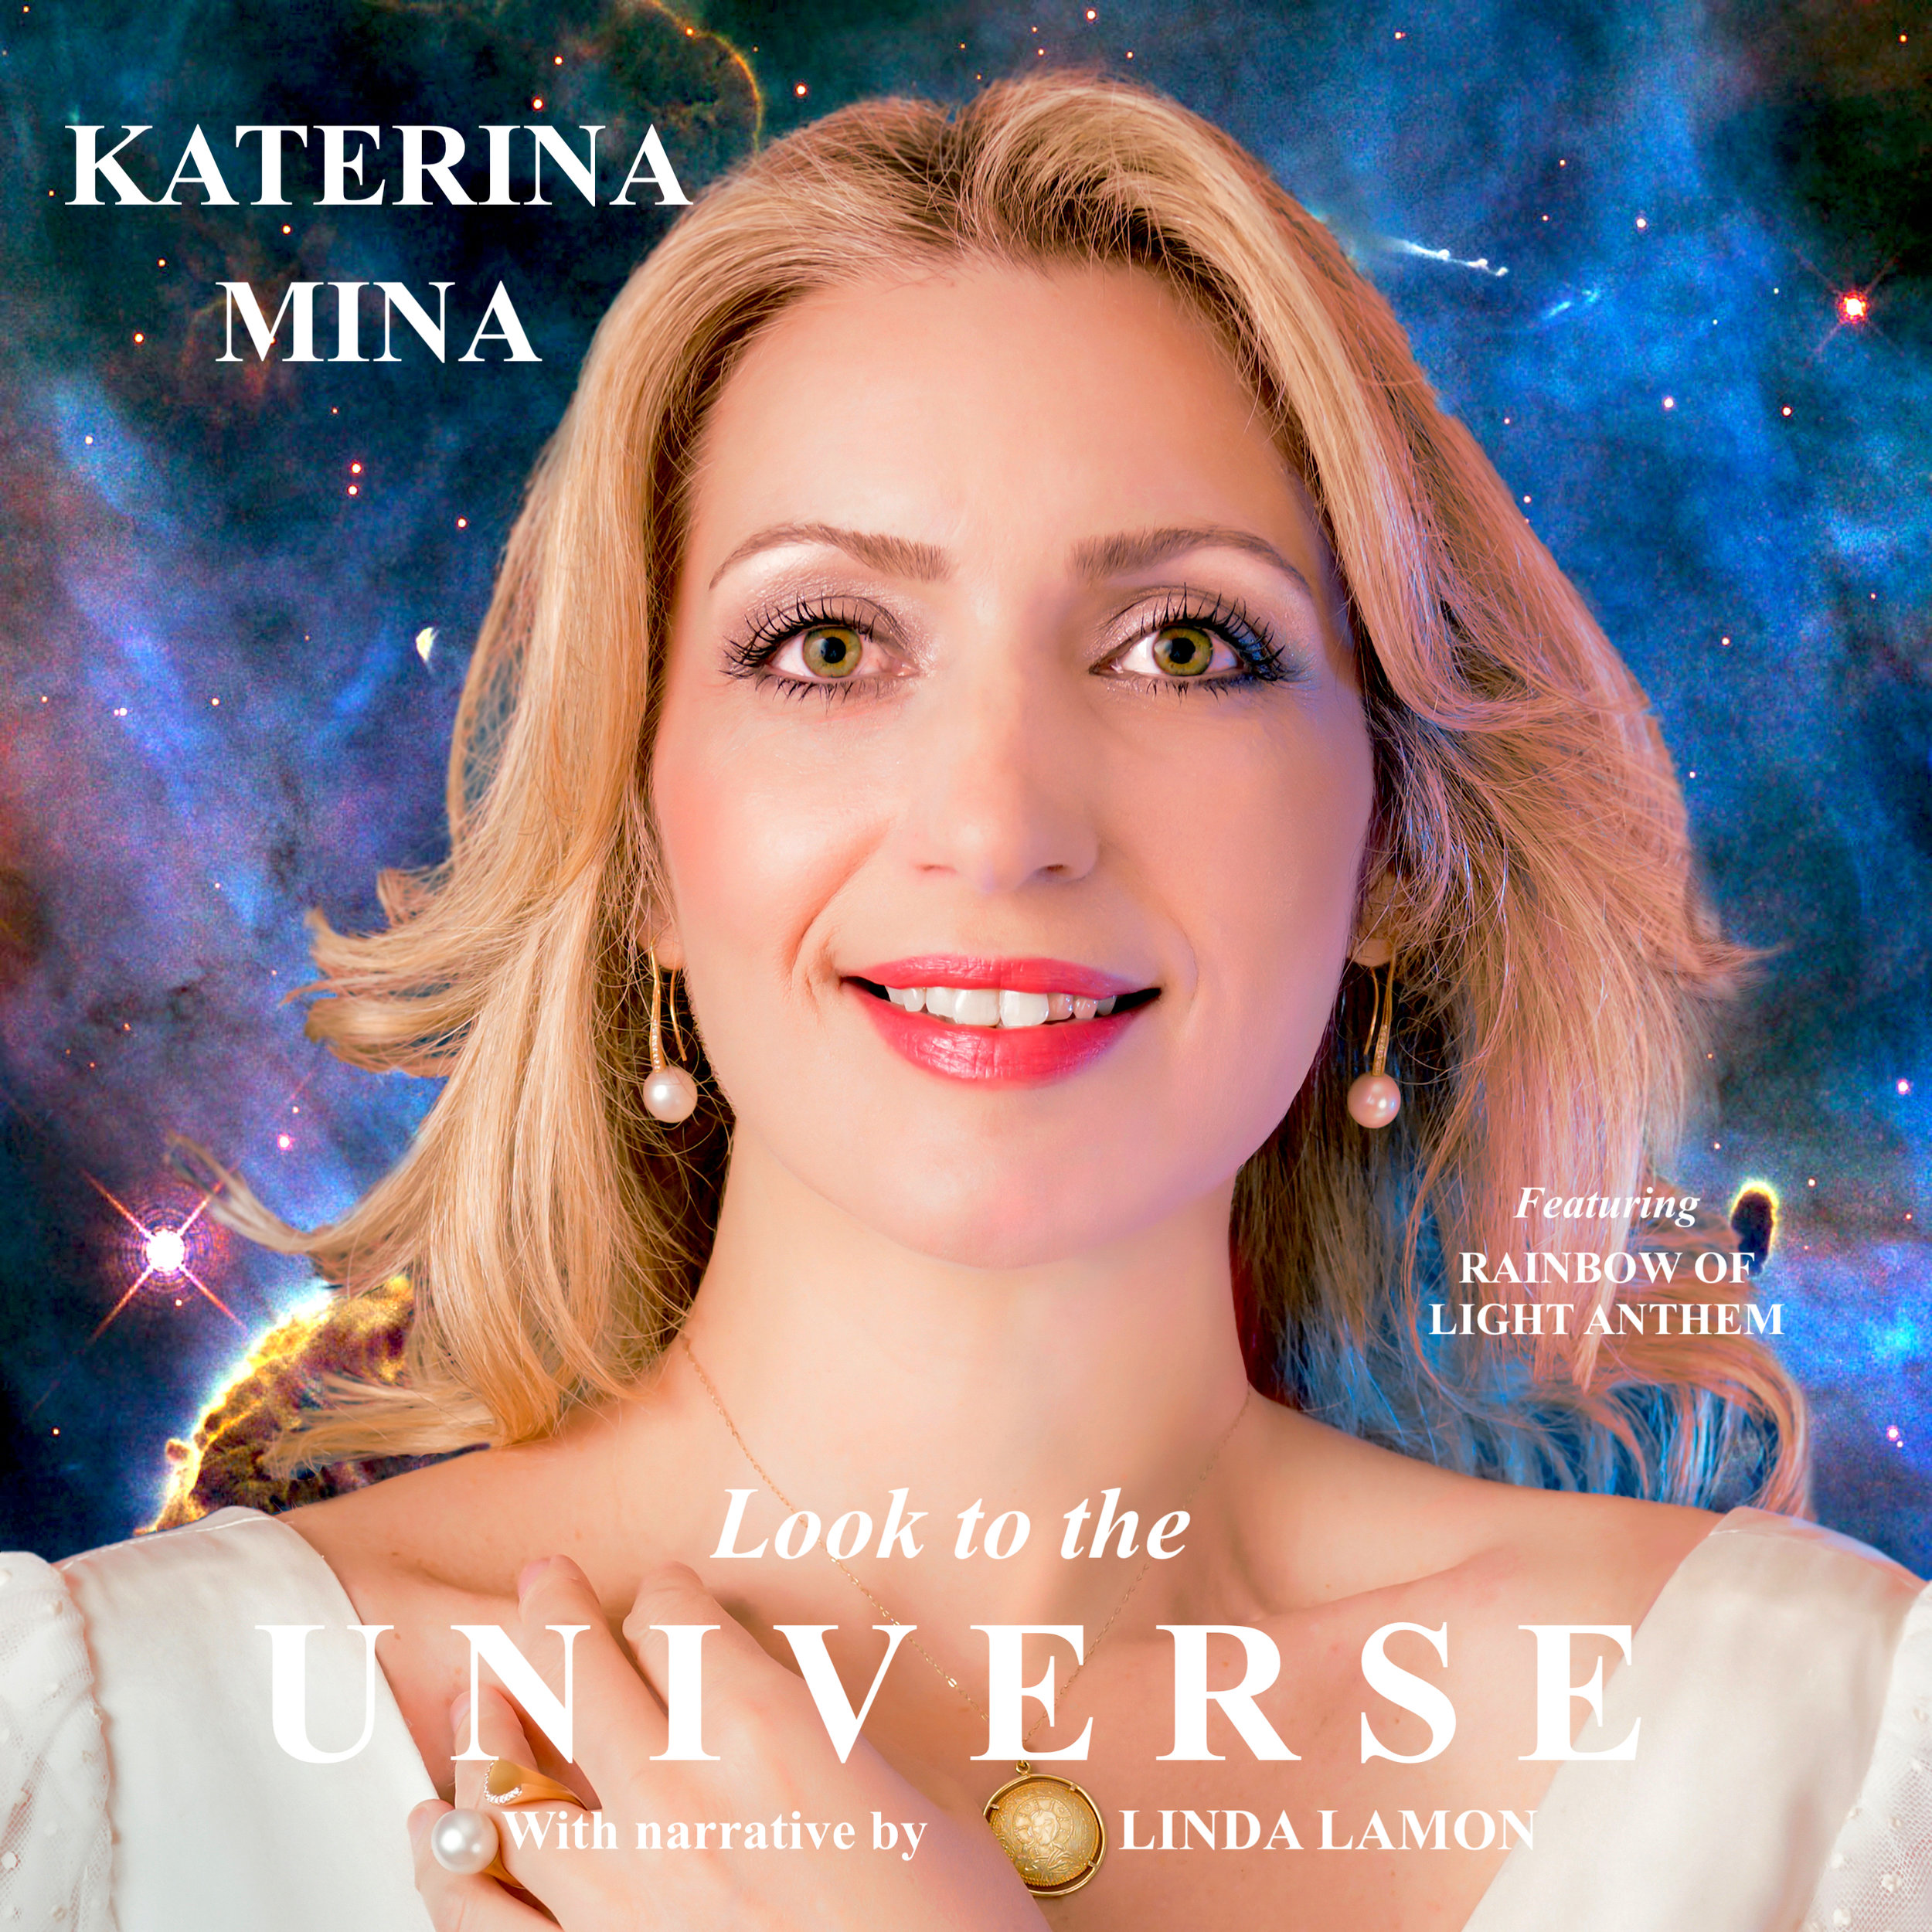 Look to the Universe (Remix Version) - Soprano Katerina MinaMusic by Linda LamonProduced by Nigel StonierAirtight Studios ManchesterSINGLE / 2019